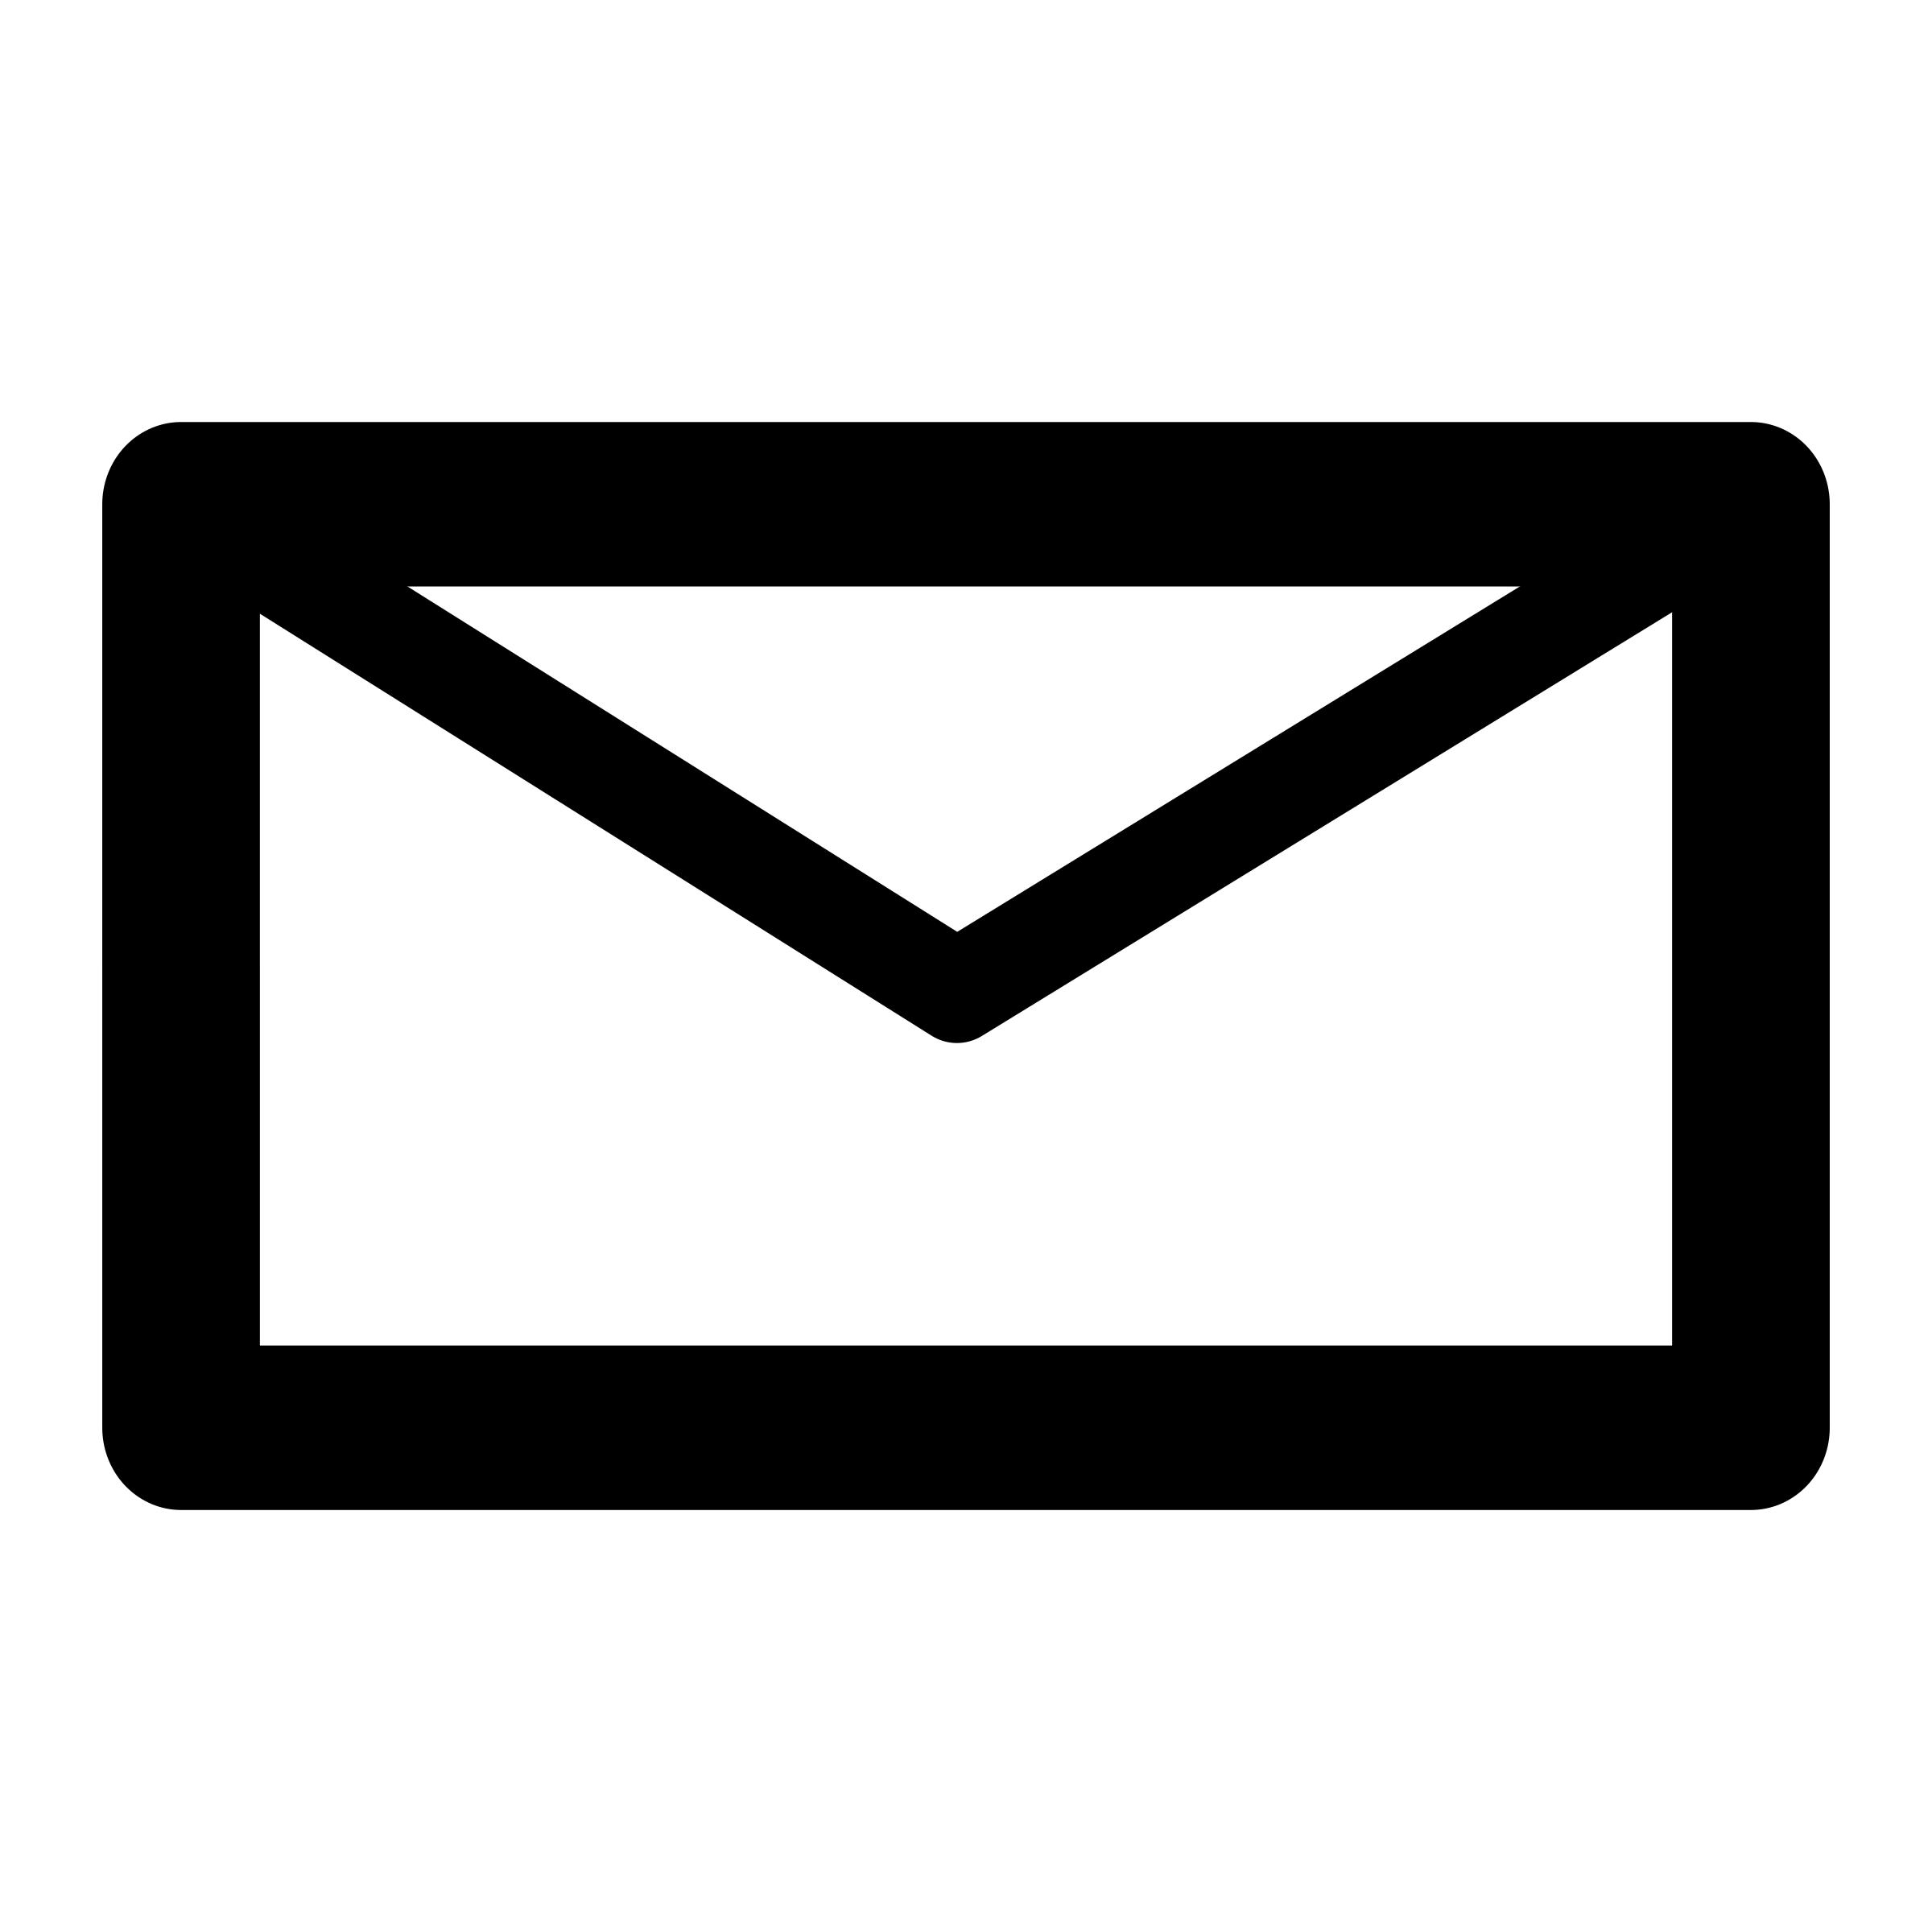 Mail clipart mail symbol. Free icons png ma